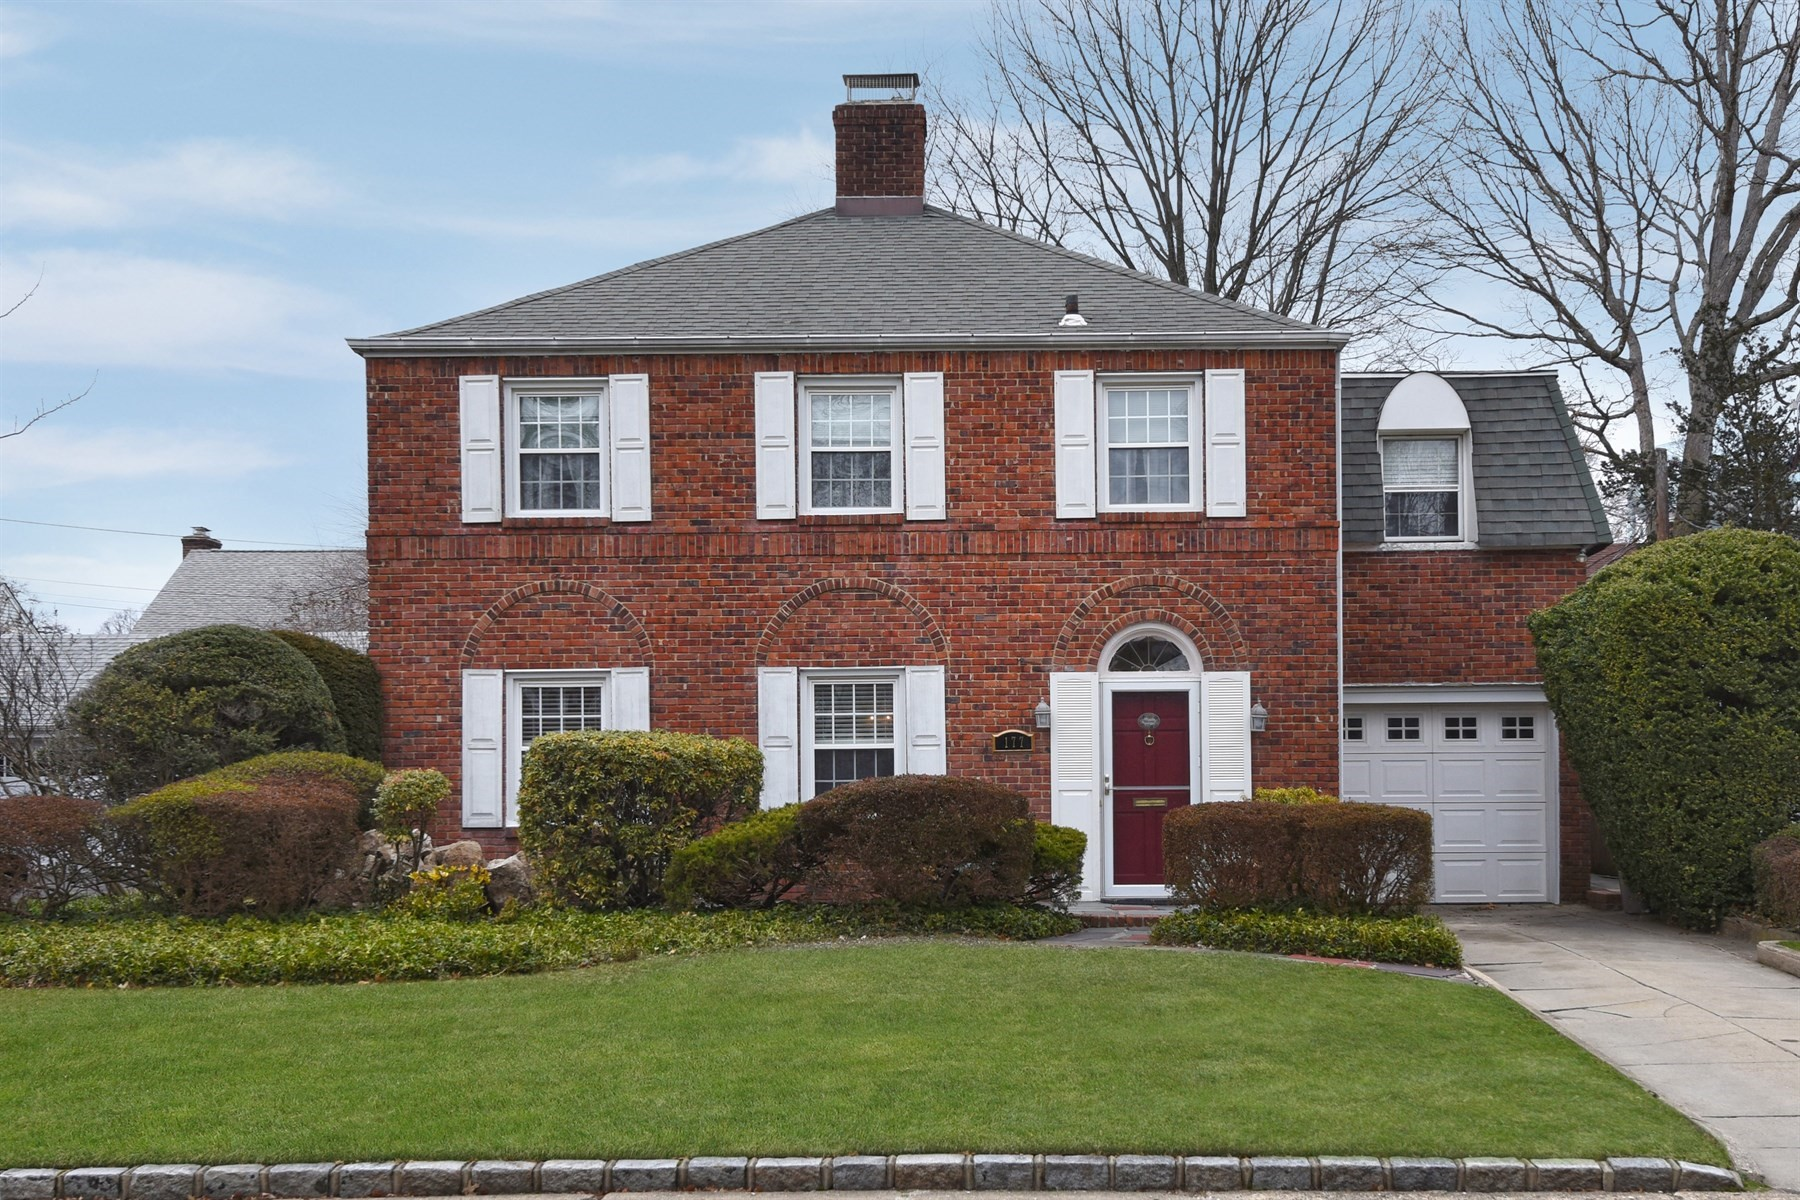 Single Family Home for Sale at 177 Voorhis Ave , Rockville Centre, NY 11570 177 Voorhis Ave, Rockville Centre, New York, 11570 United States